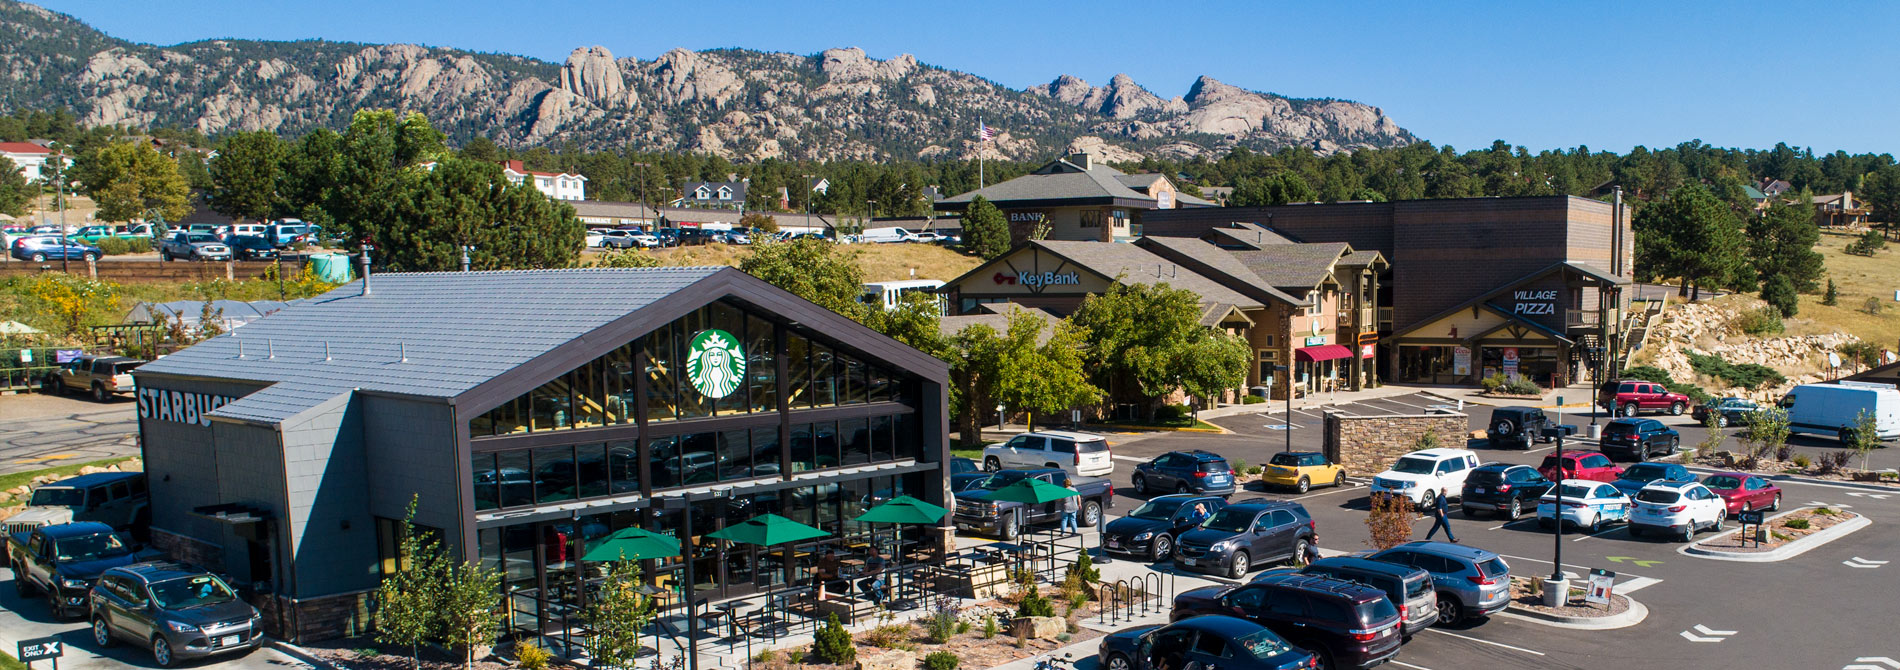 Starbucks View Stanley Village Estes Park